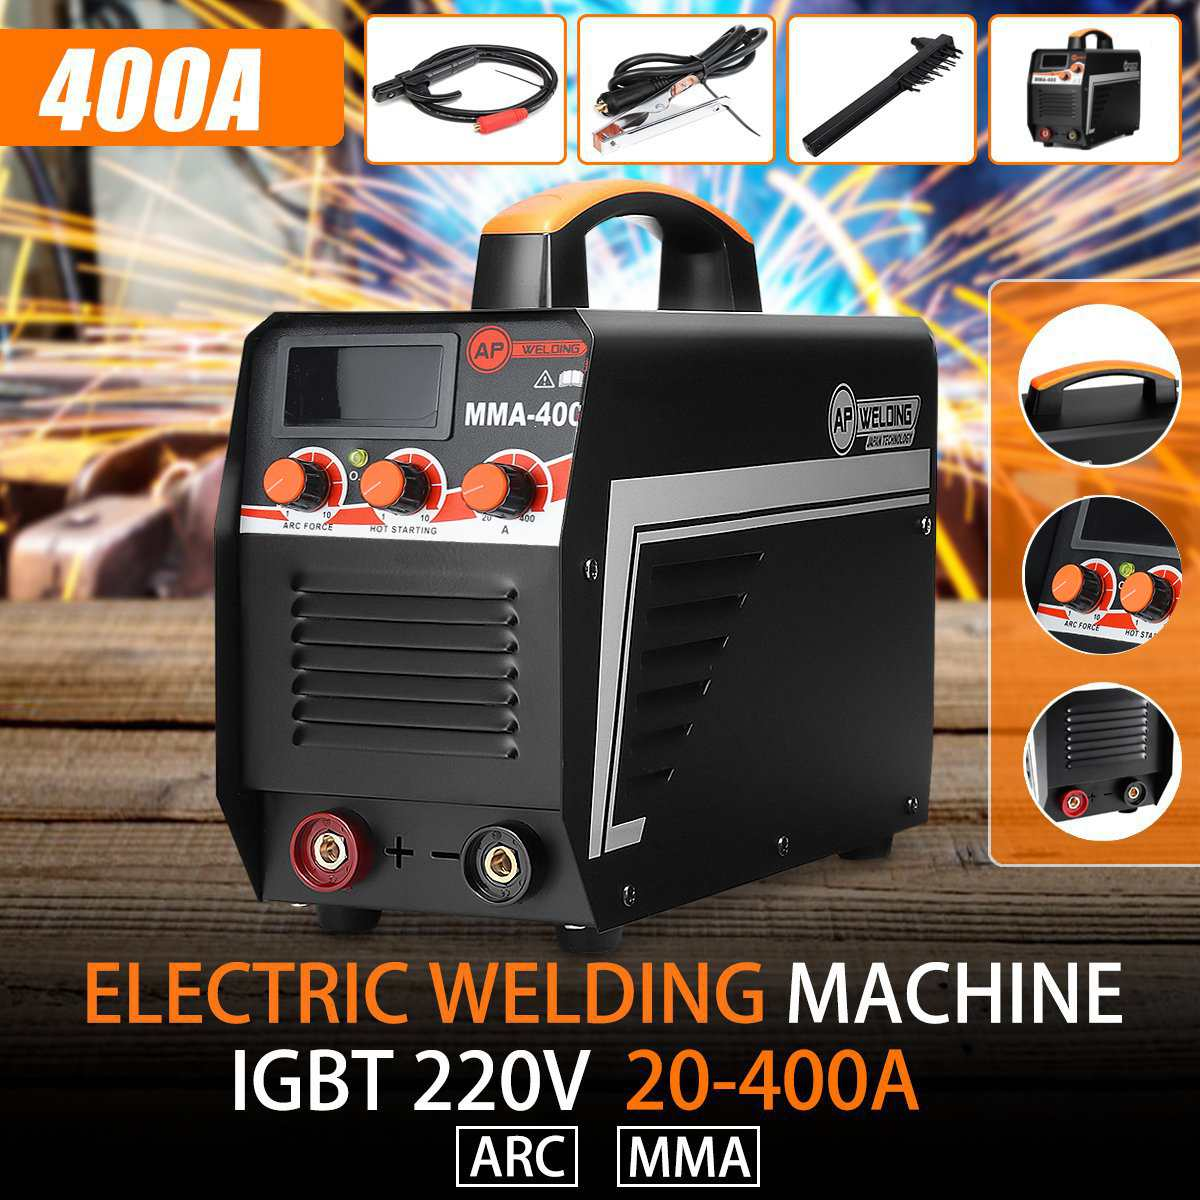 Electric Welding Machine IGBT Inverter Arc Welder Digital Display Portable Mini Arc Welding Machine Welder 220V Welding Tools